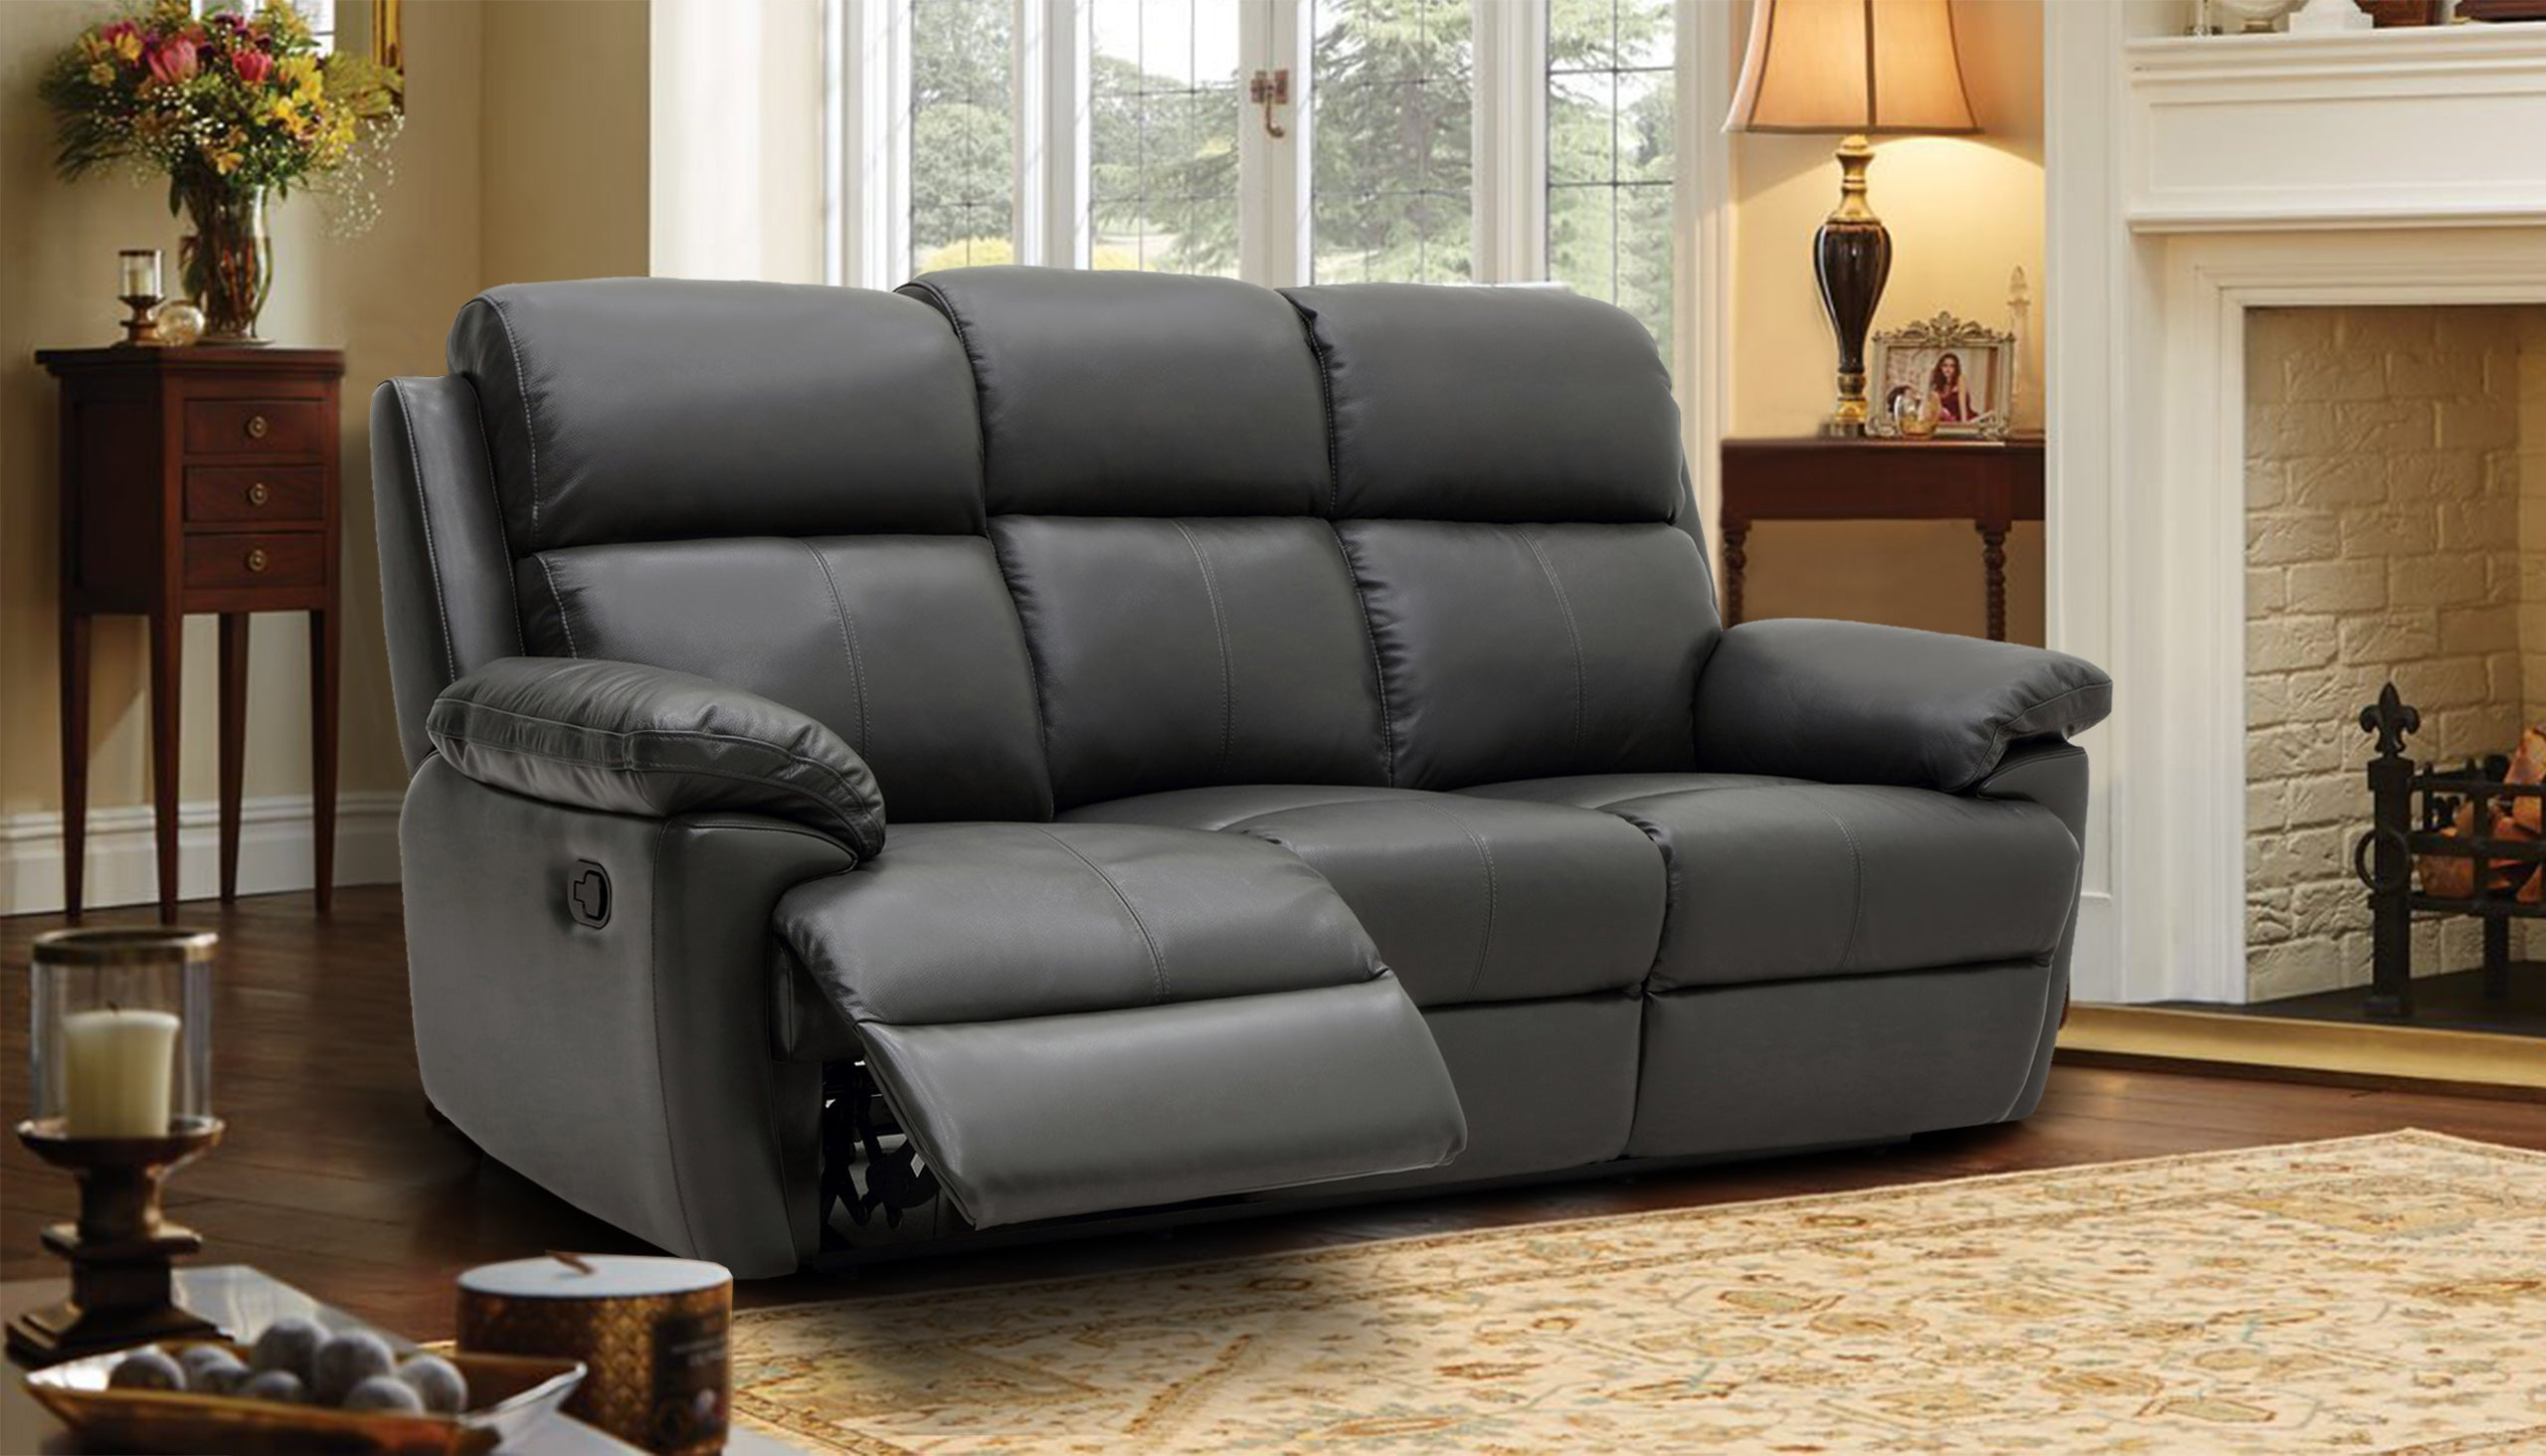 Blair 3 Seater Manual Recliner Sofa